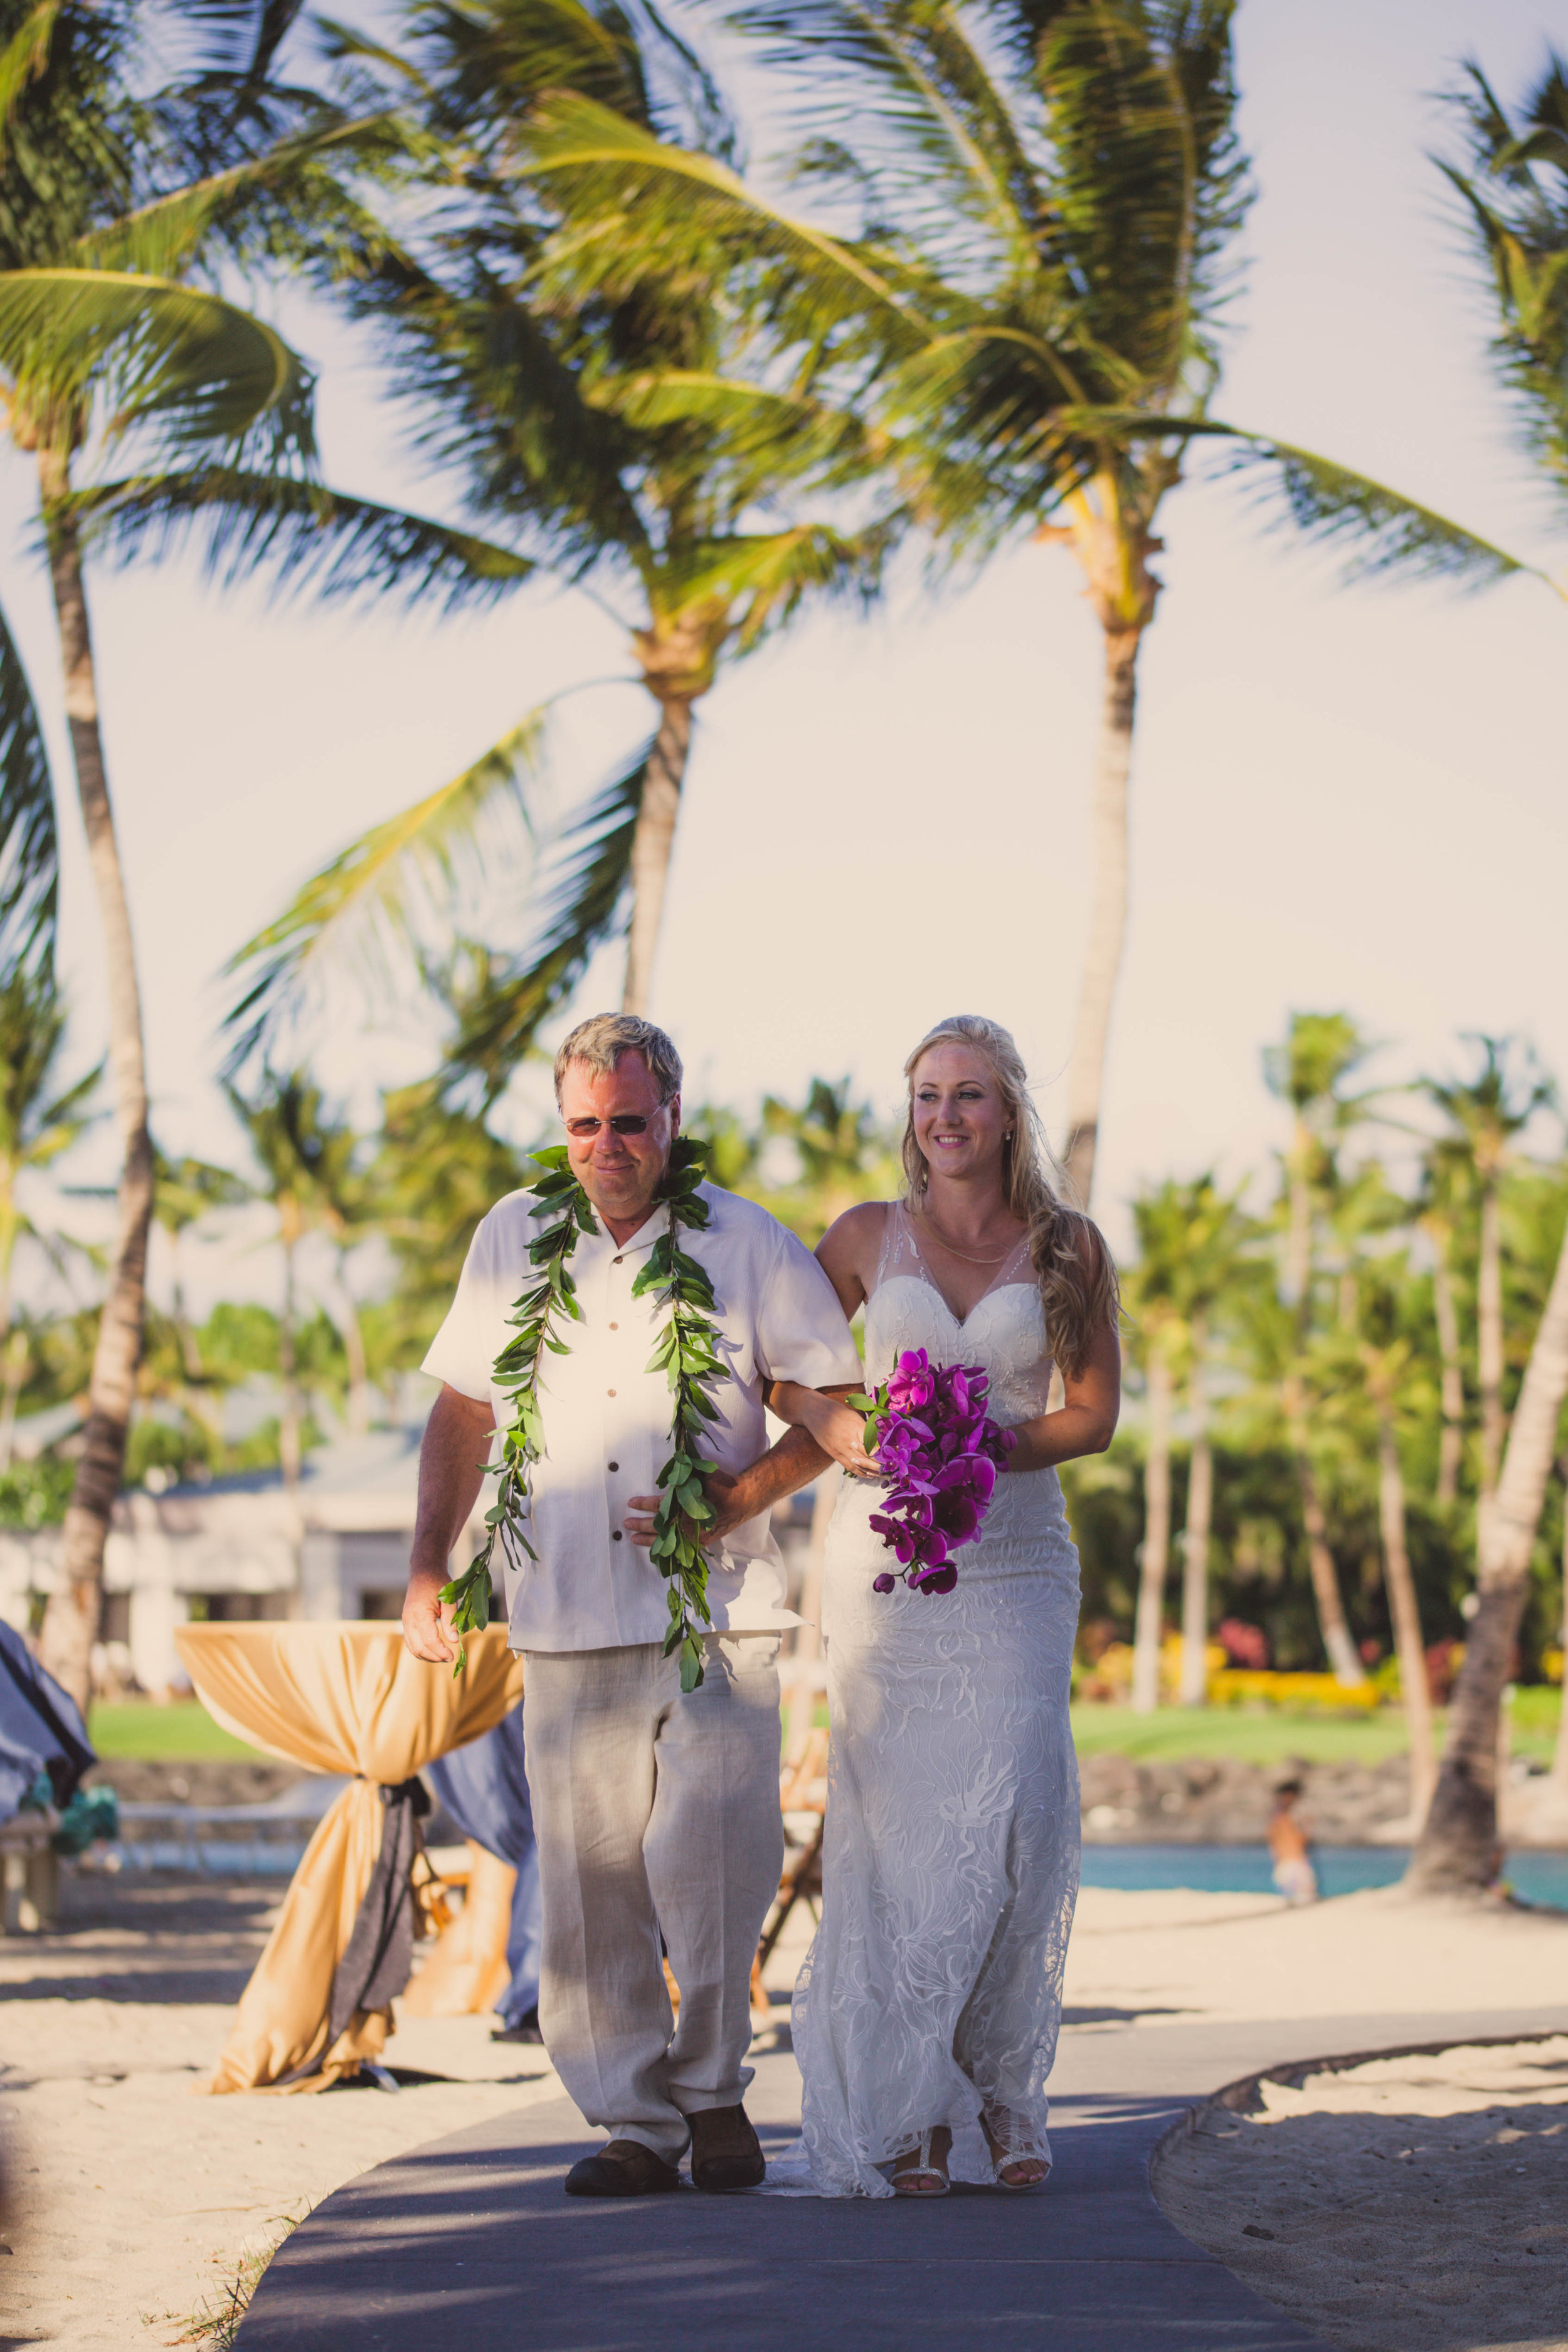 big island hawaii fairmont orchid beach wedding © kelilina photography 20170812173526-1.jpg